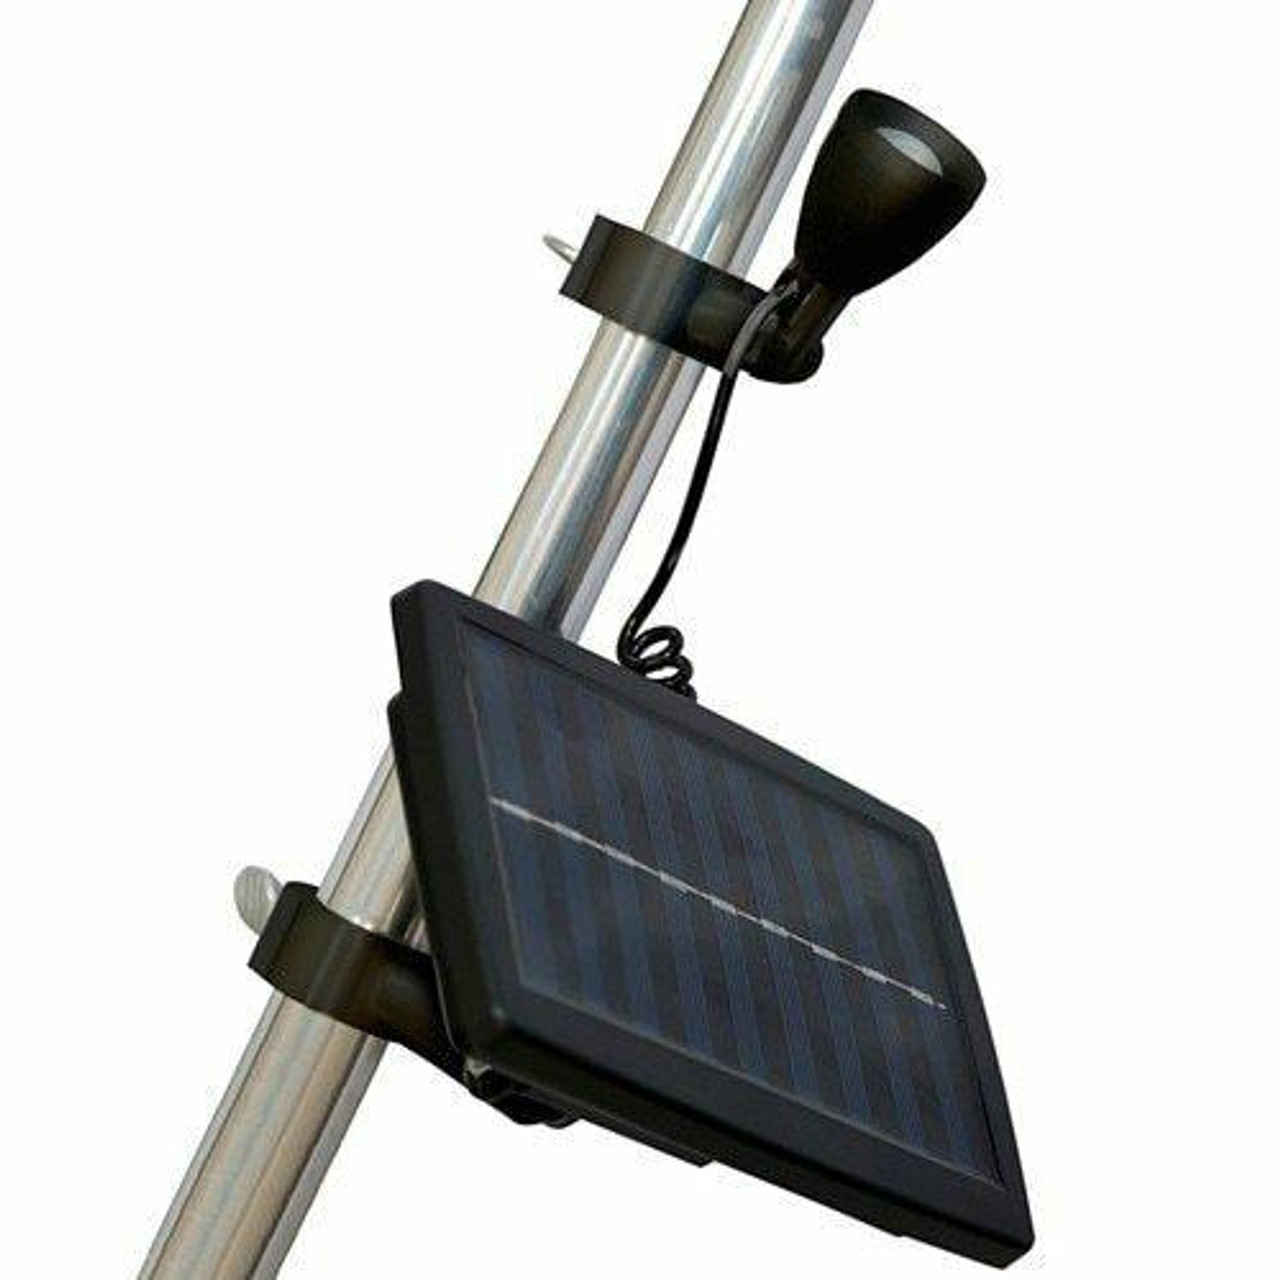 The Micro Solar Light has two black adaptable rings that slide over the pole and can be fastened with silver screws. Attached to the first ring is the adjustable LED light that moves freely and stays in place. The second ring is attached to a rectangular black solar panel that charges the light. The solar panel has a black cord that connects to the light to give it power.